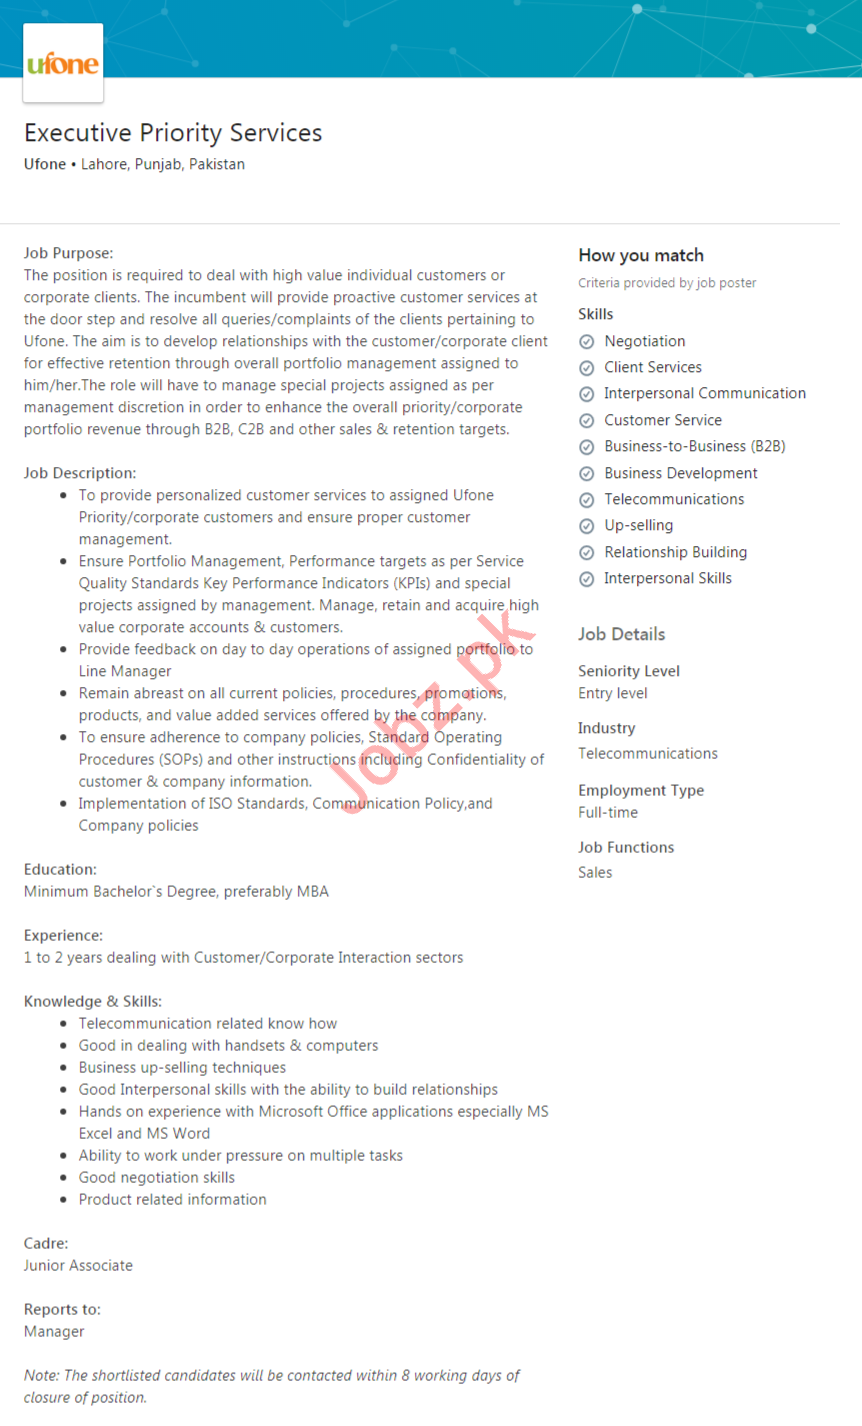 Executive Priority Services Job 2020 in Lahore